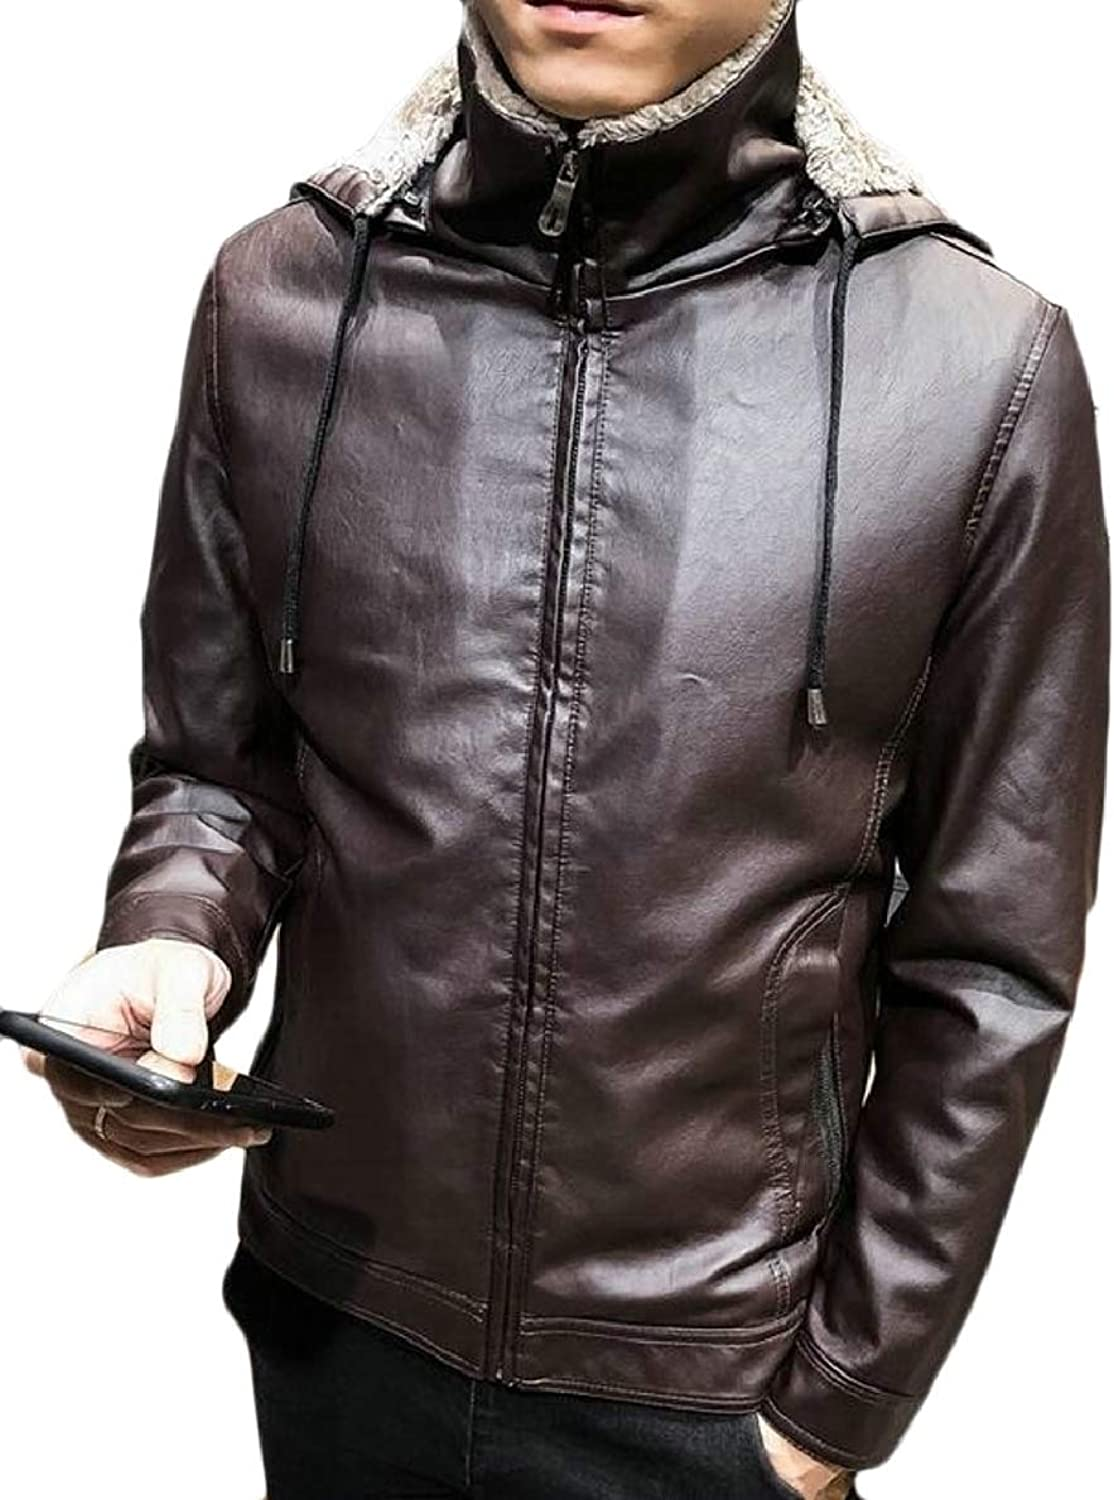 Tymhgt-CA Men's Thicken Faux Fur Collar Fleece Lined PU Leather Shearling Jacket